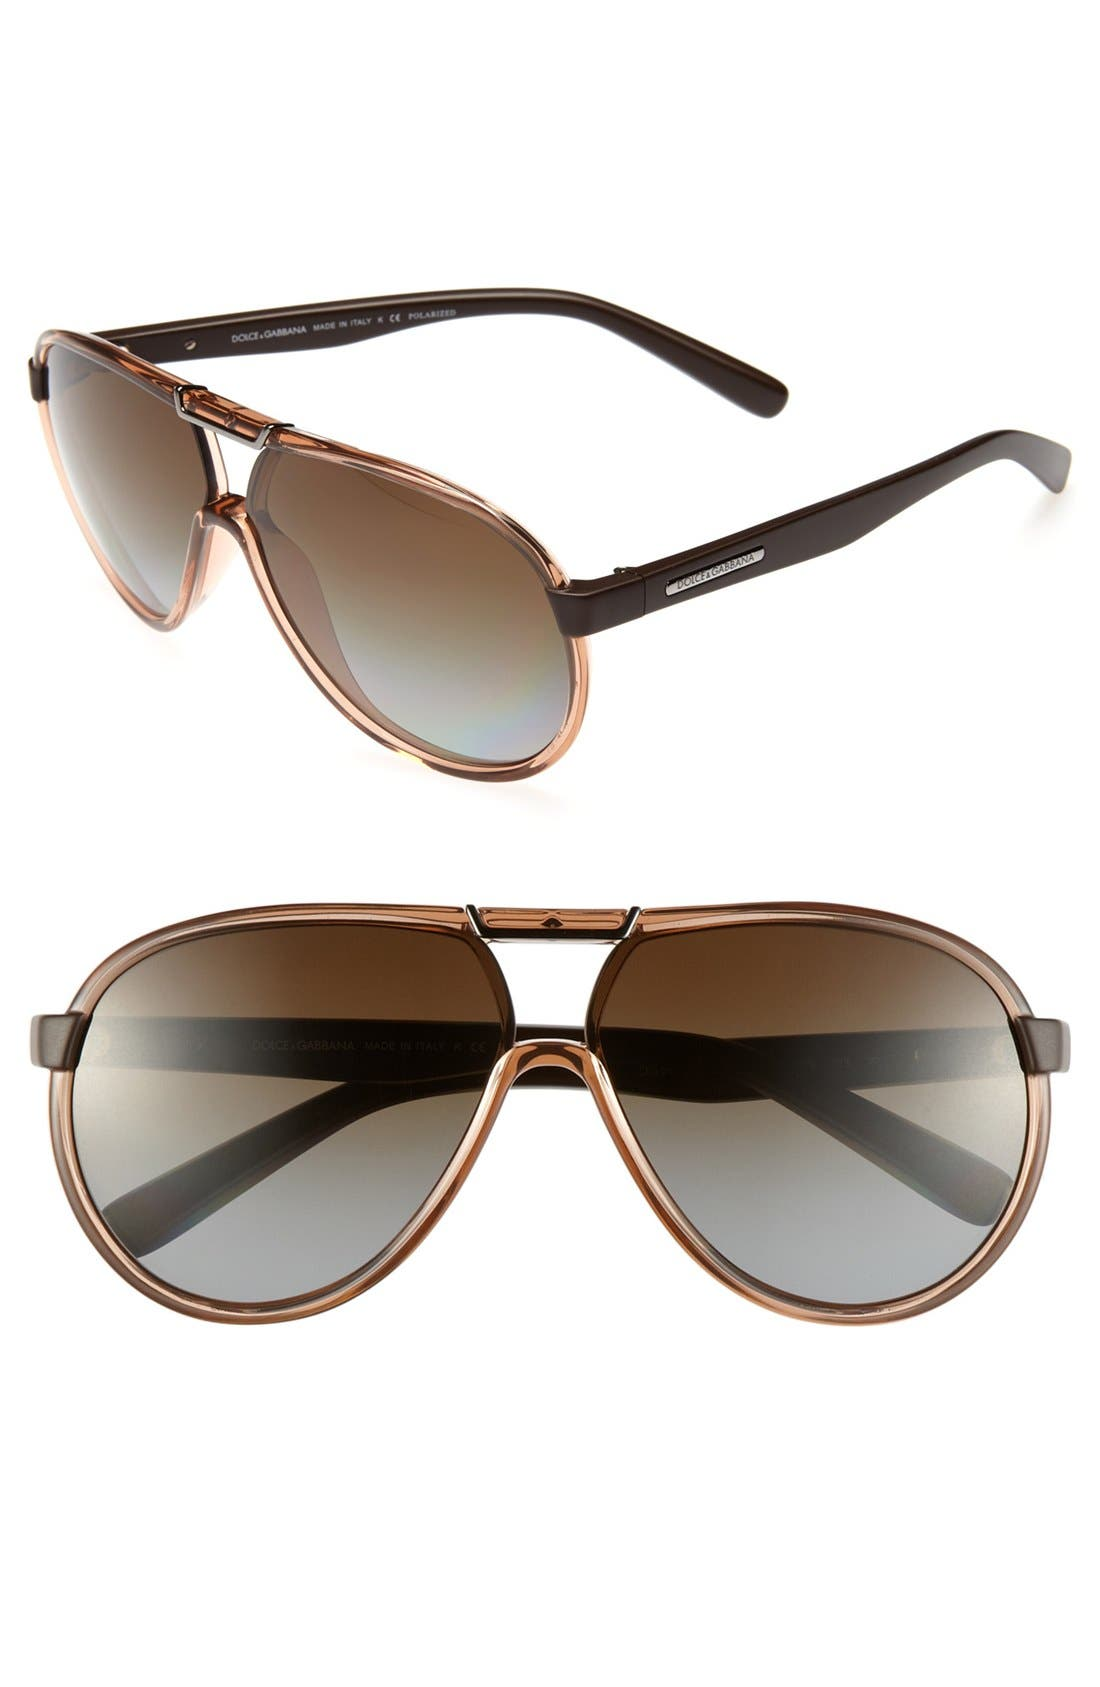 Main Image - Dolce&Gabbana 63mm Polarized Brow Bar Sunglasses